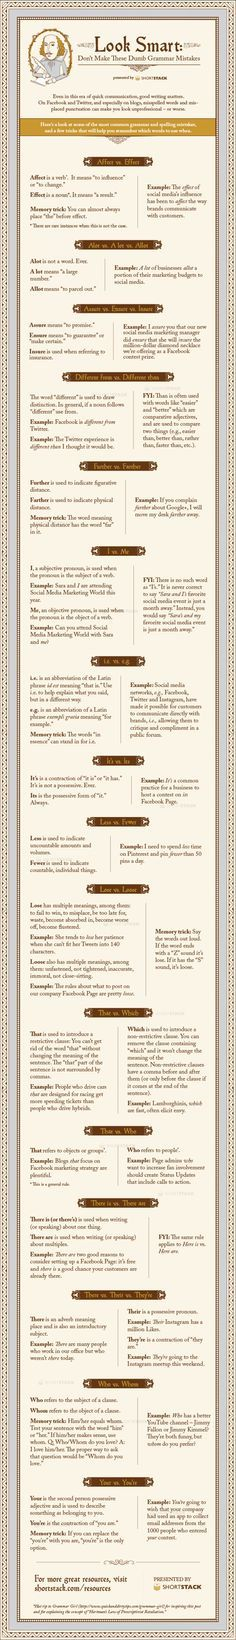 Dont make anymore grammar mistakes and spelling errors. Alexanders shares an infographic to